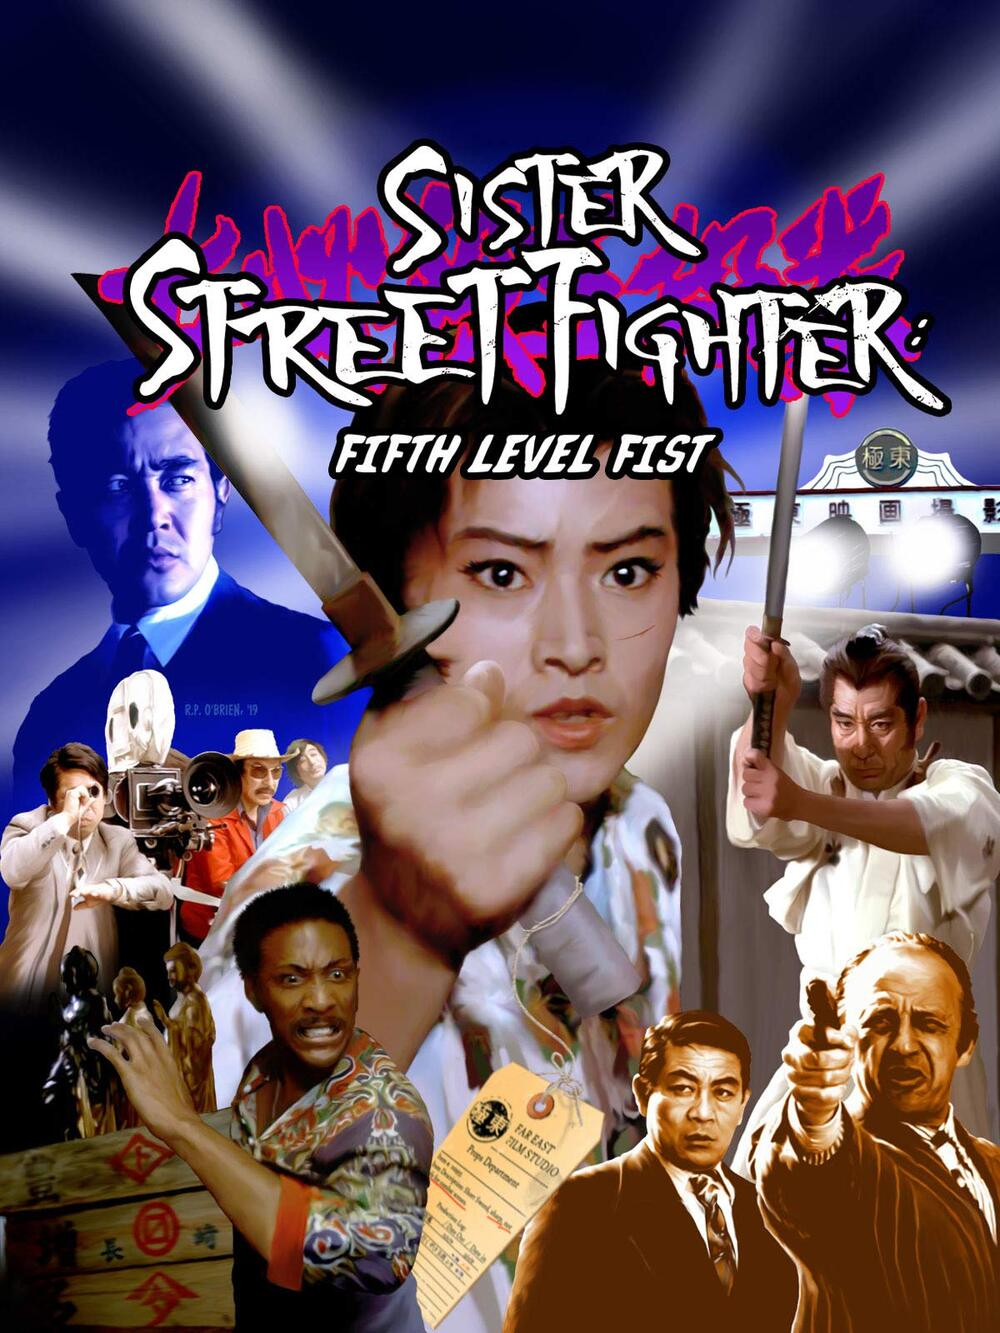 Onna Hissatsu Godan Ken / Sister Street Fighter: Fifth Level Fist (1976)